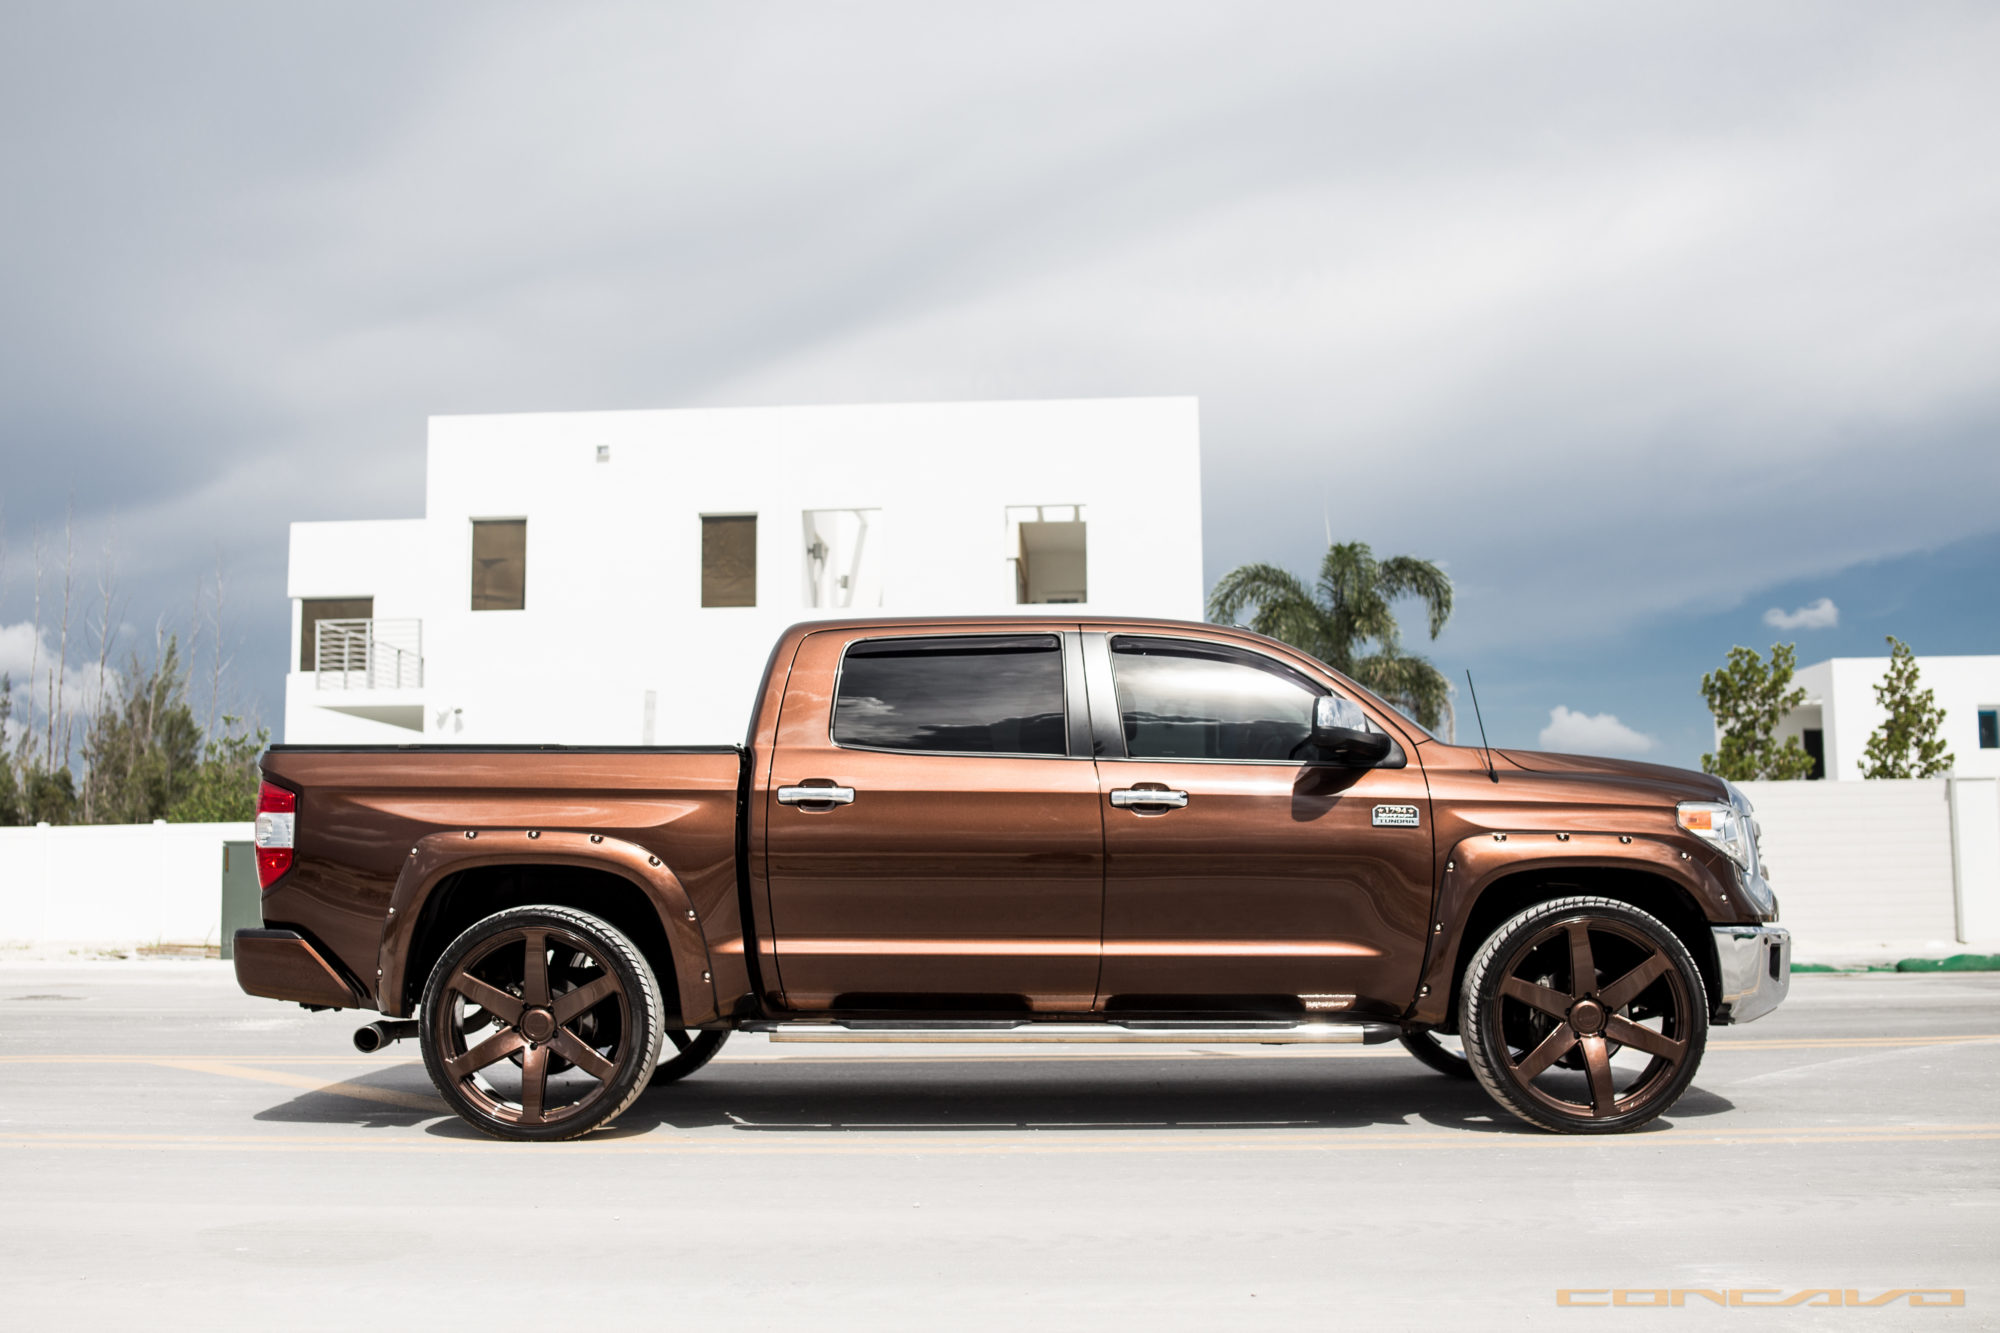 Img together with Hqdefault additionally Img as well Wj as well Cd A D B Custom Truck Kustom. on toyota tundra